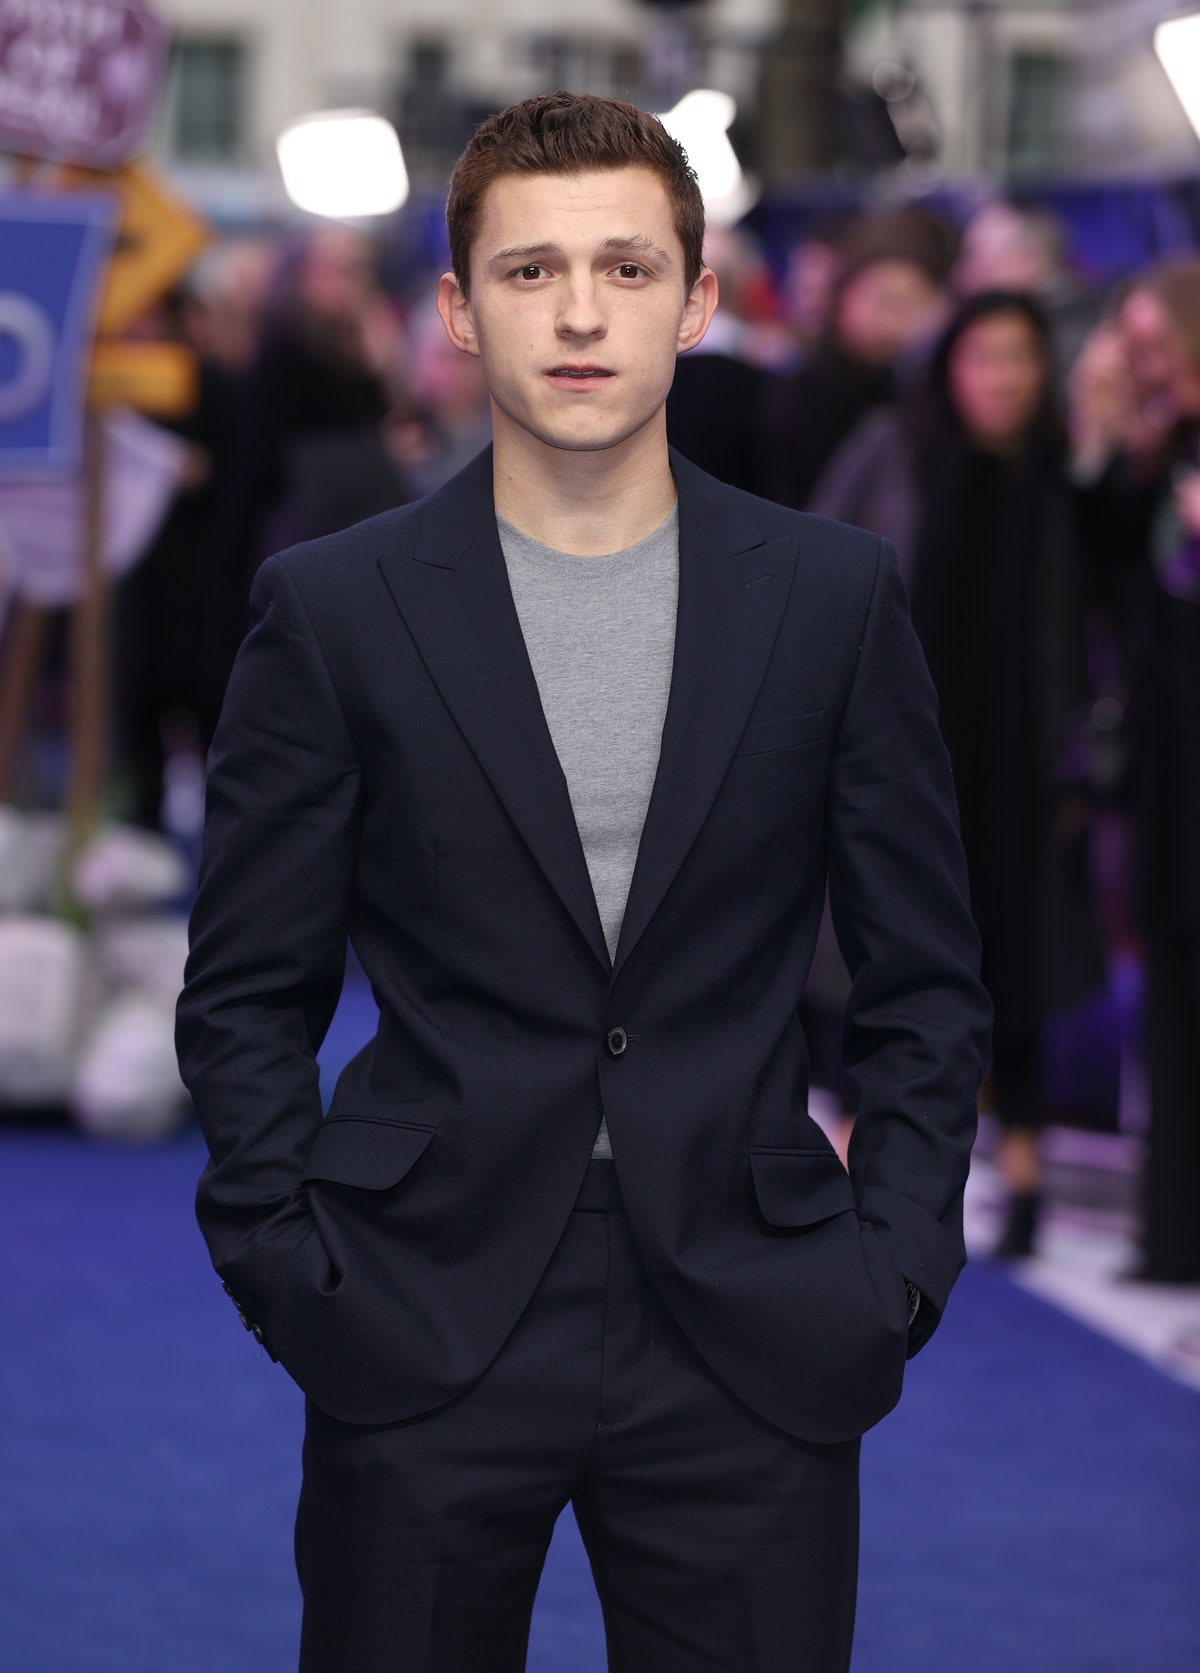 """LONDON, ENGLAND - FEBRUARY 23: Tom Holland attends the """"Onward"""" UK Premiere at The Curzon Mayfair on..."""